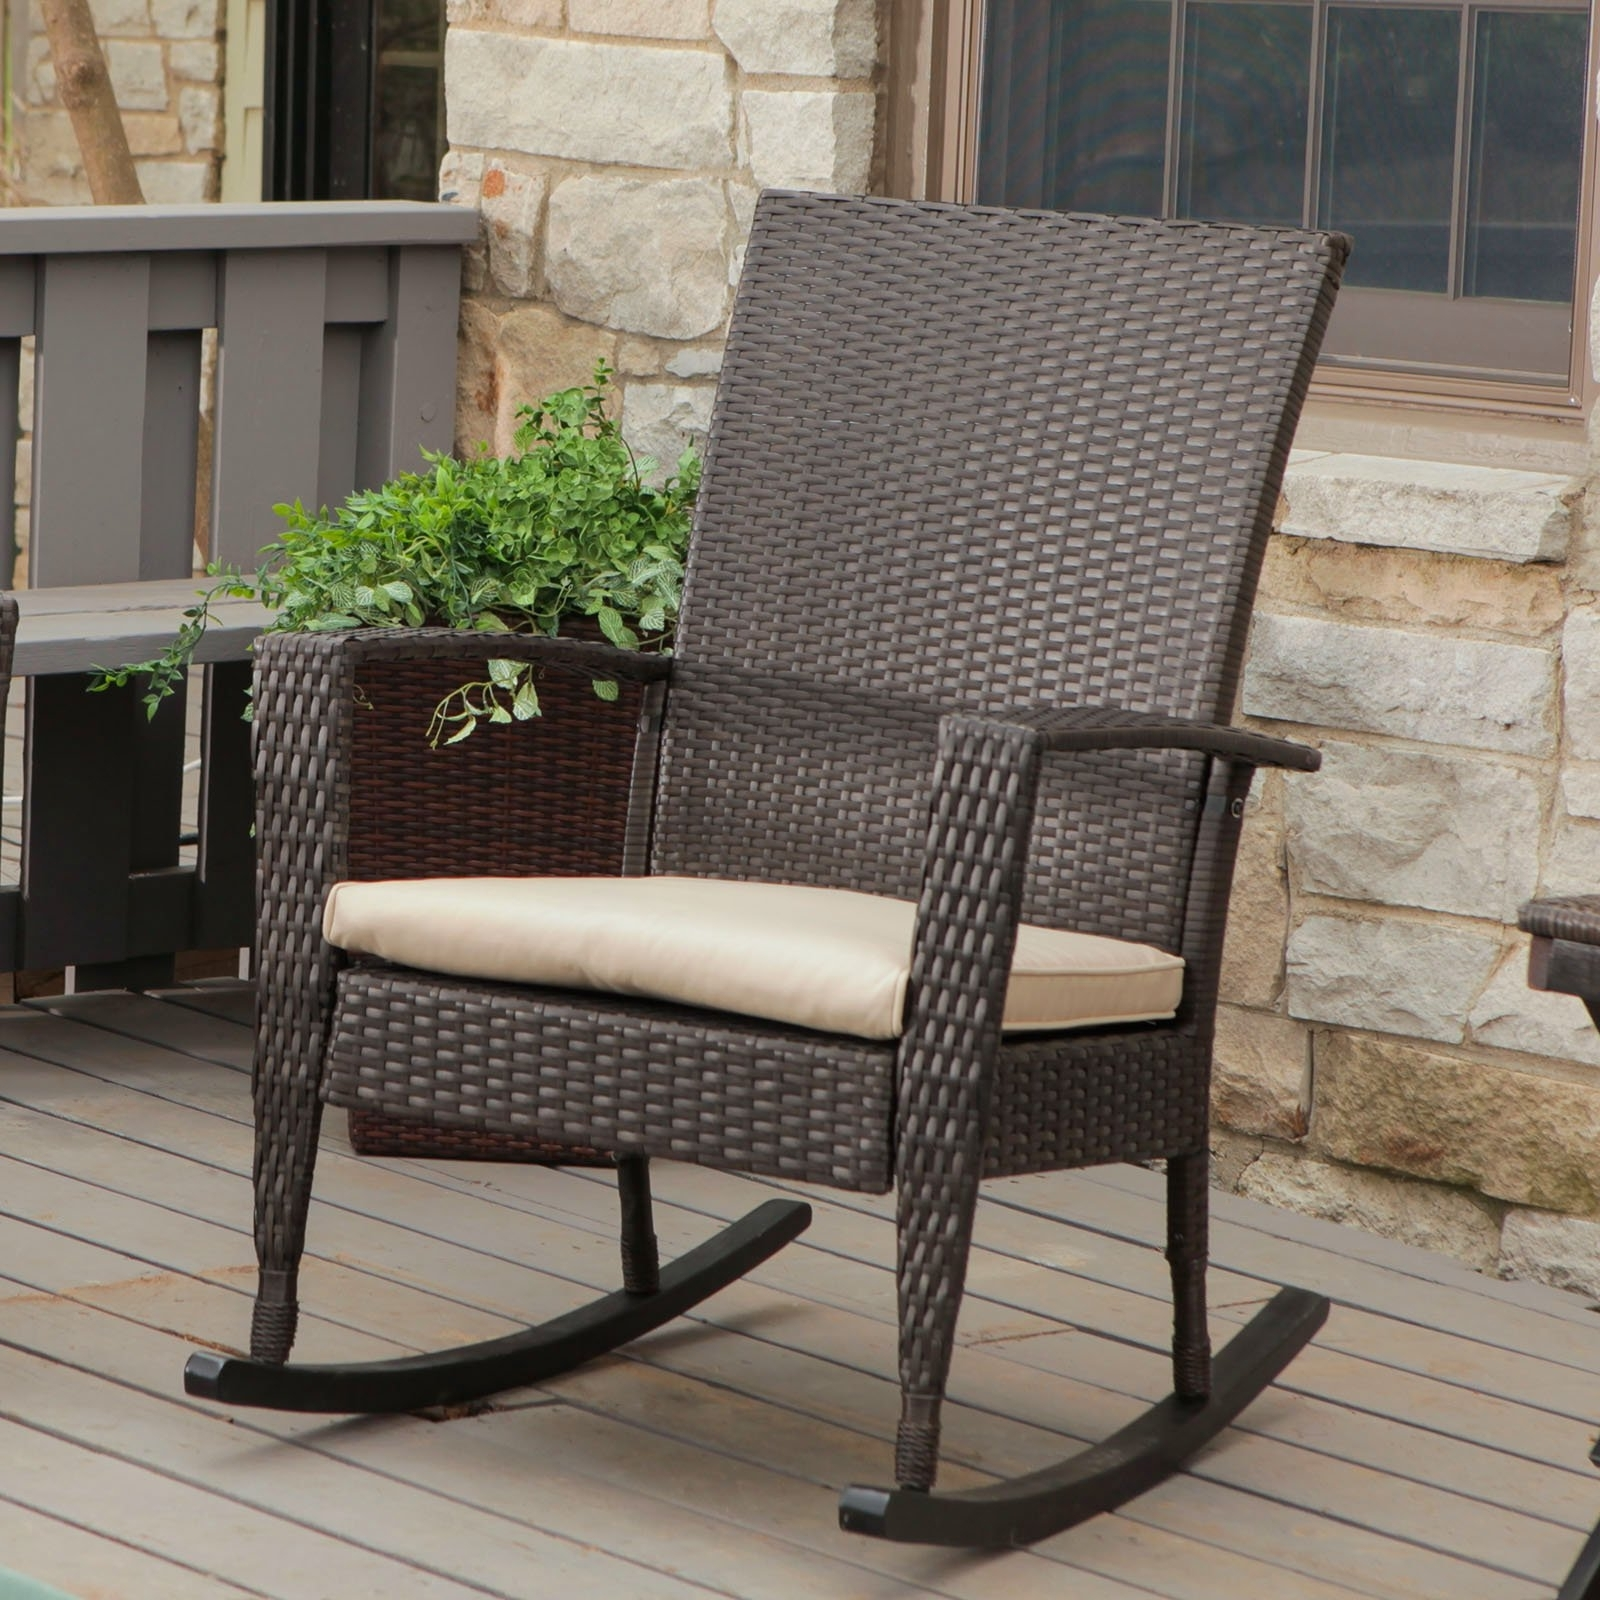 Patio Rocking Chairs Pertaining To Famous Resin Patio Rocking Chairs : Spectacular And Sensational Patio (View 10 of 20)